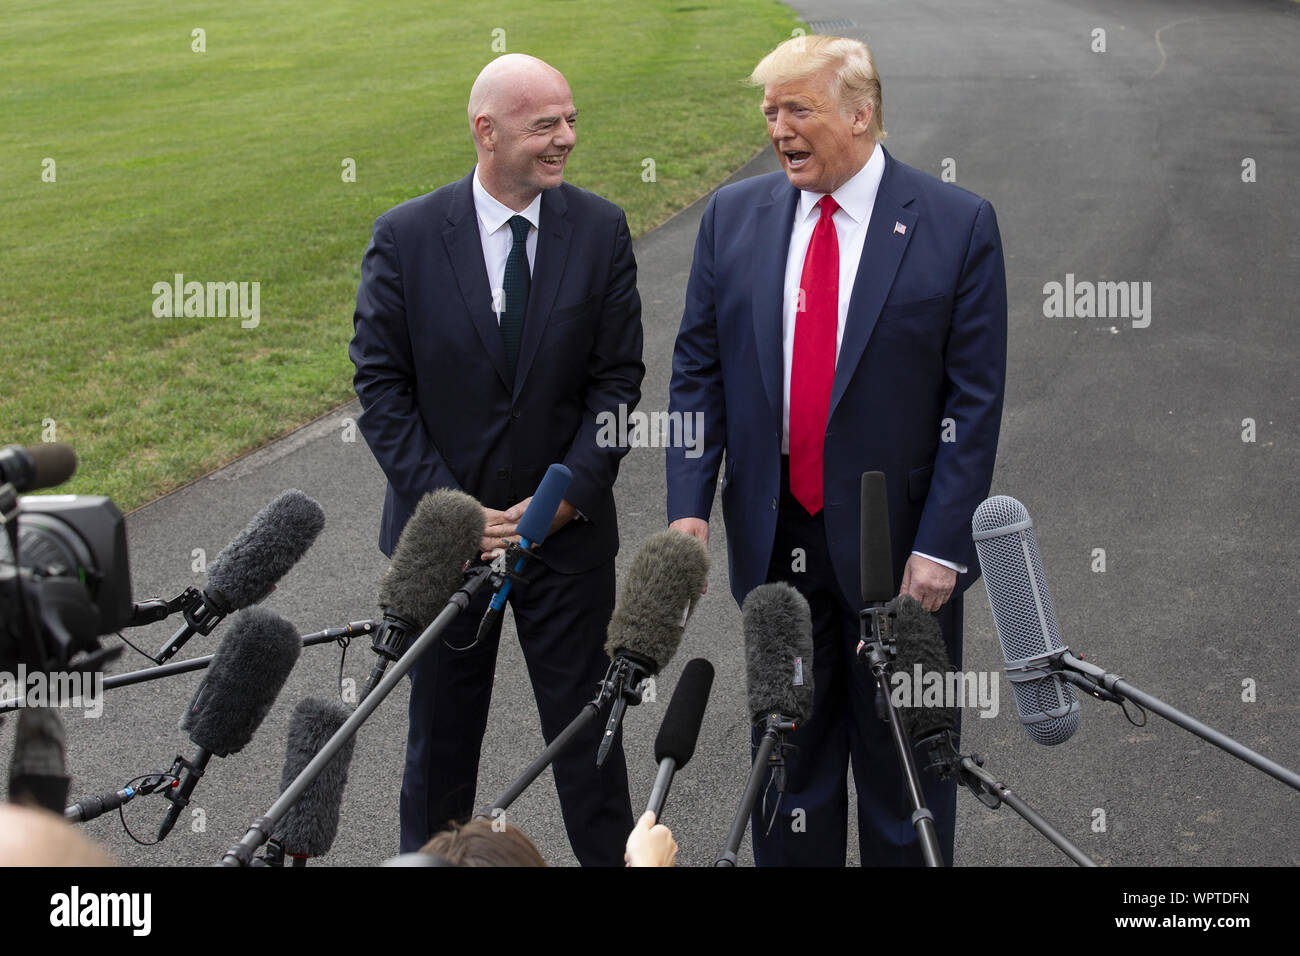 Washington, District of Columbia, USA. 9th Sep, 2019. United States President Donald J. Trump and the President of FIFA Gianni Infantino speak to the press as United States President Donald J. Trump departs the White House in Washington, DC, U.S. for a rally in North Carolina on September 9, 2019. Credit: Stefani Reynolds/CNP/ZUMA Wire/Alamy Live News Stock Photo